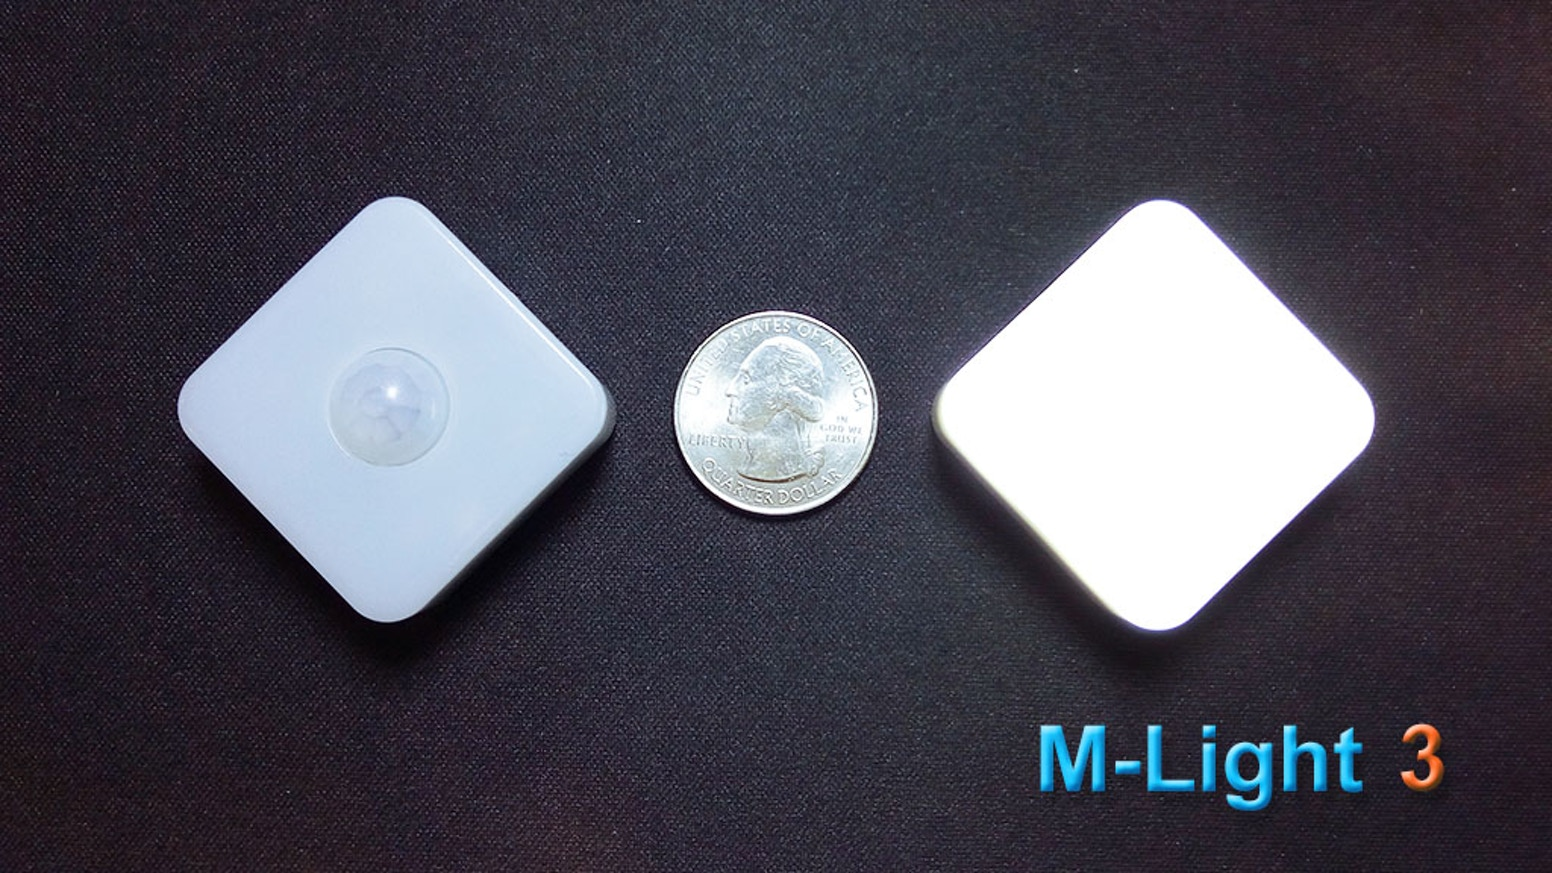 M light 3 the smallest adjustable motion sensor night light by a motion sensor and light activated rechargeable battery powered adjustable light miniature for night bathroom trips cabinets etc mozeypictures Choice Image